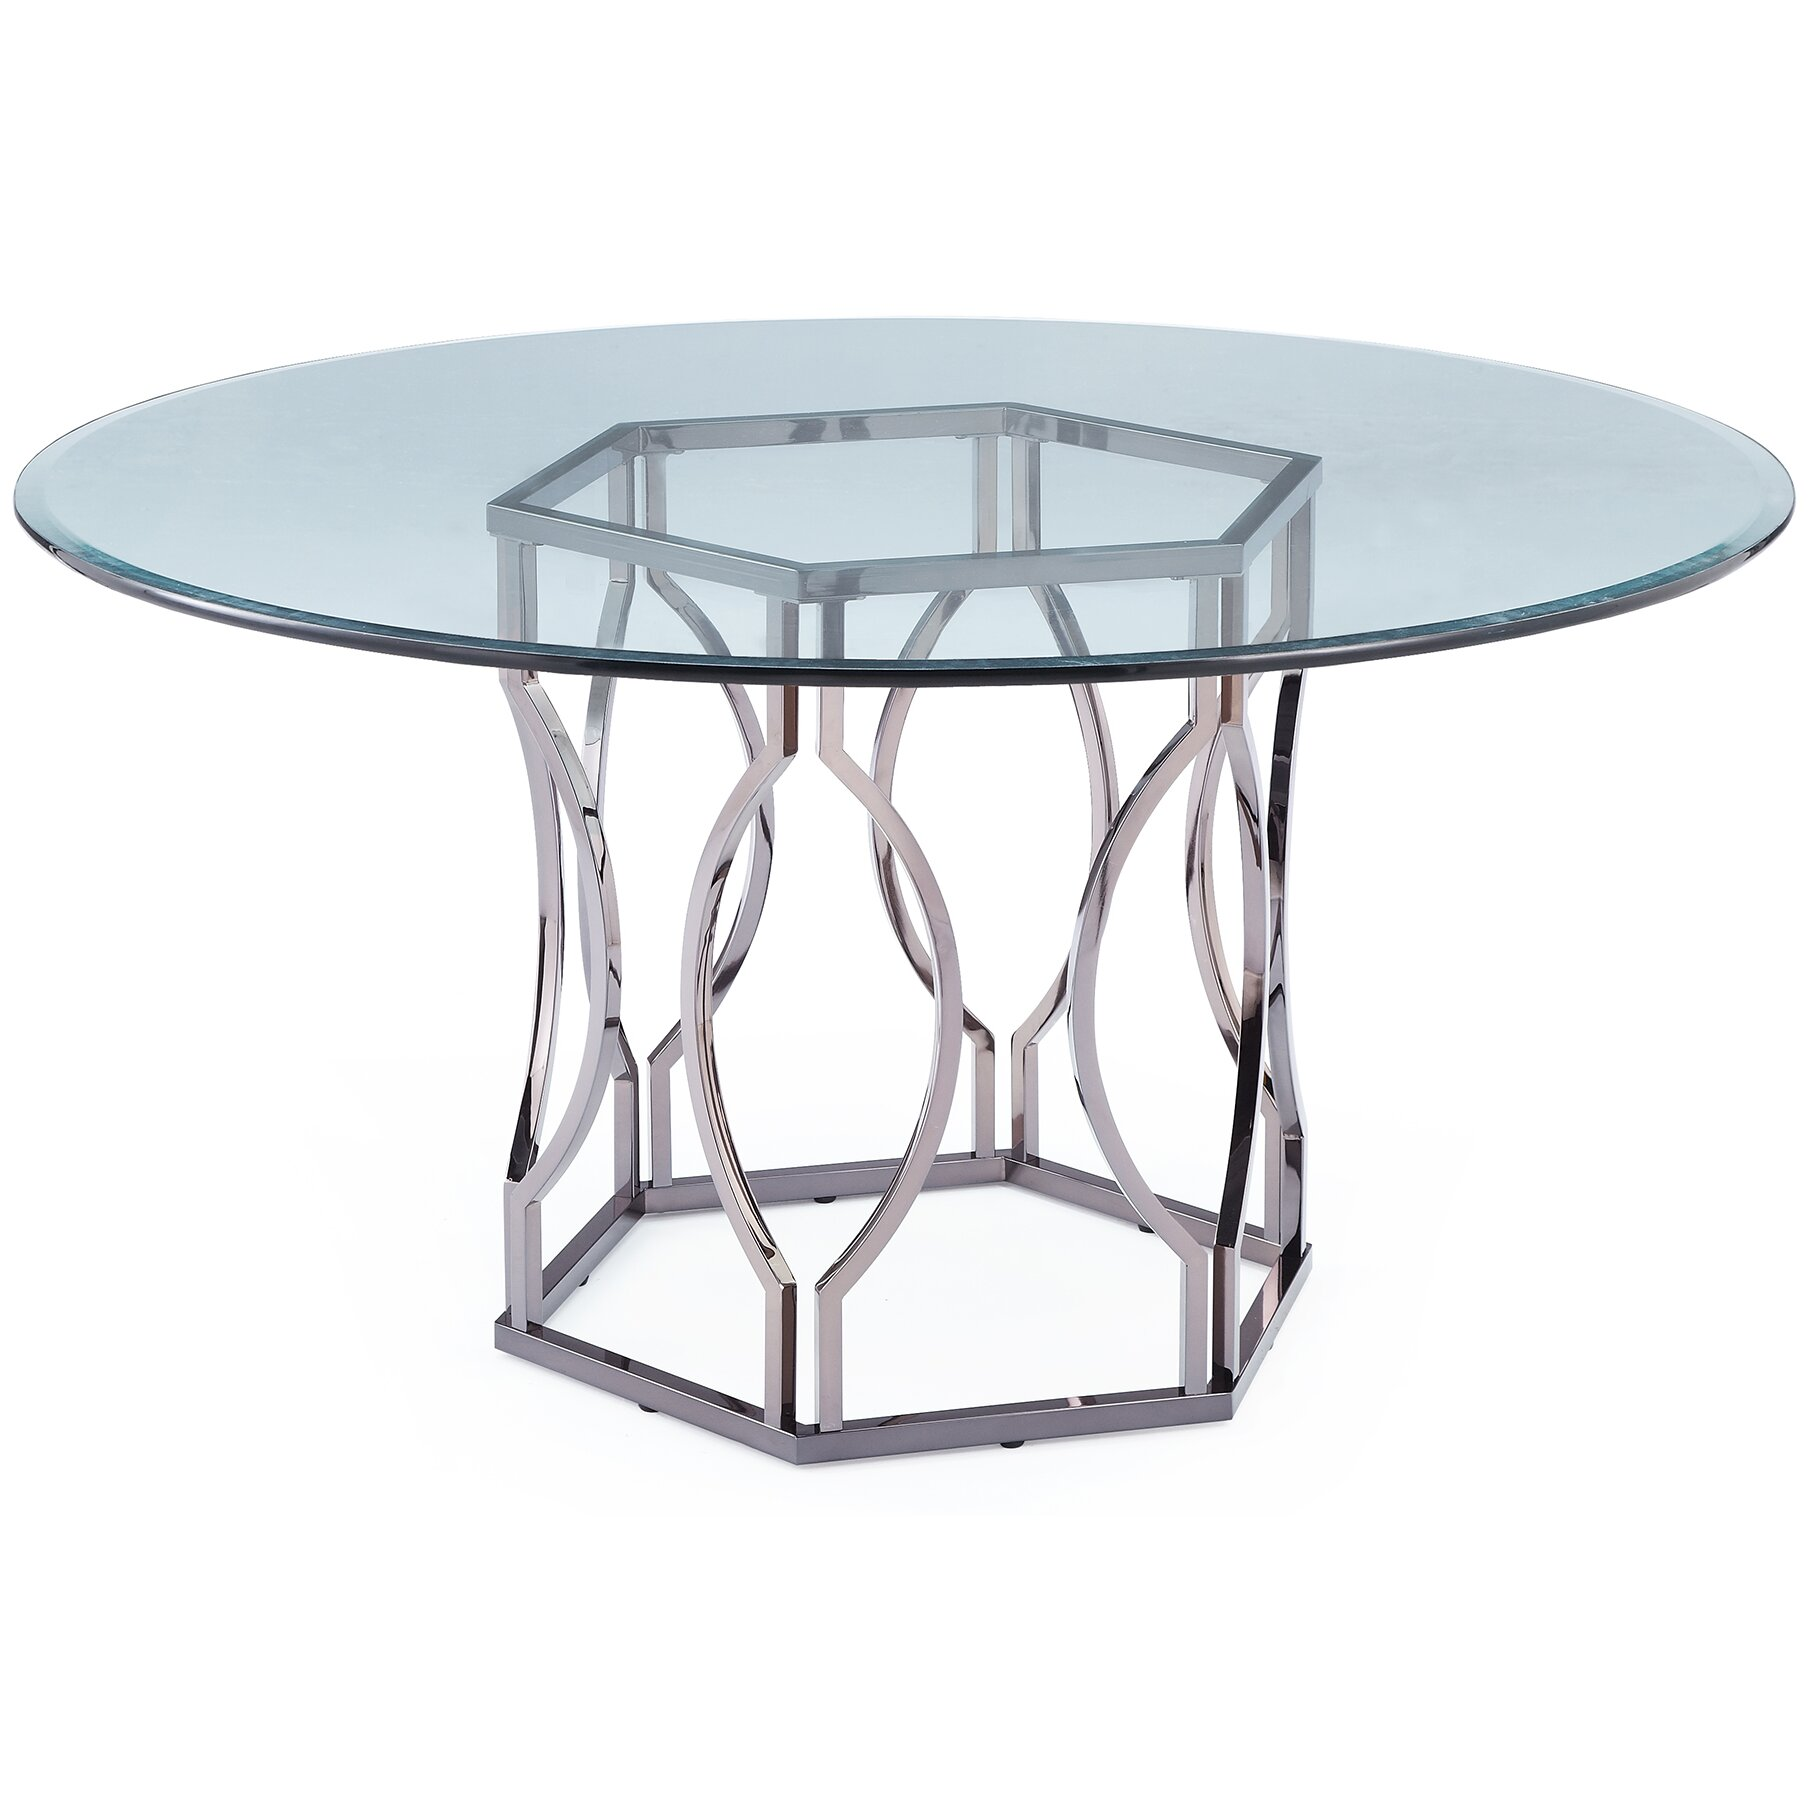 Mercer41 viggo round glass dining table reviews wayfair for Round glass dining table